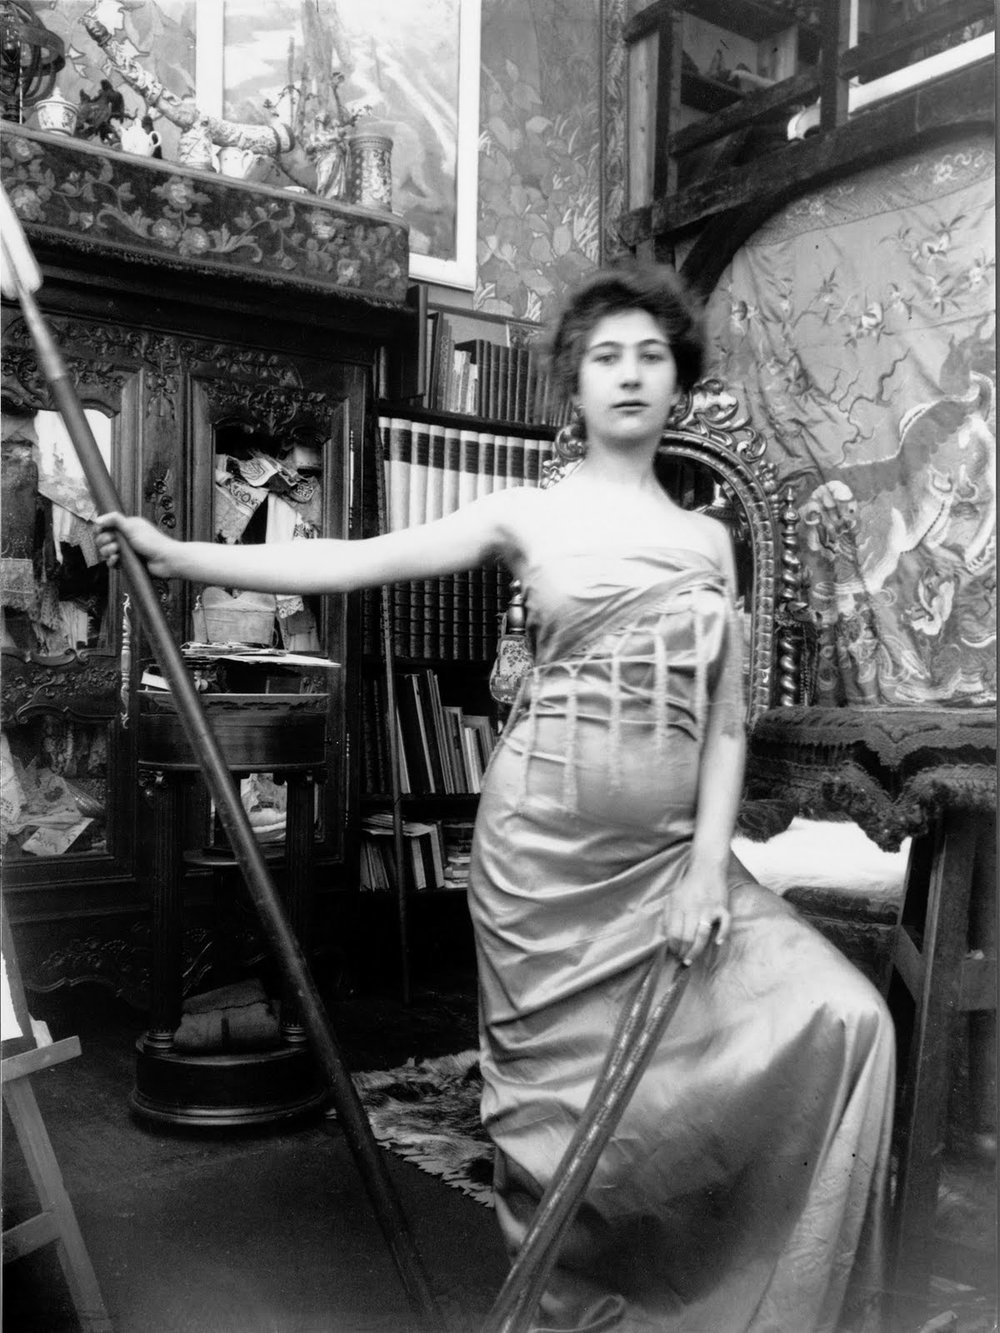 Alfons_Mucha_model_model_posing_in_muchas_studio_Paris.jpg